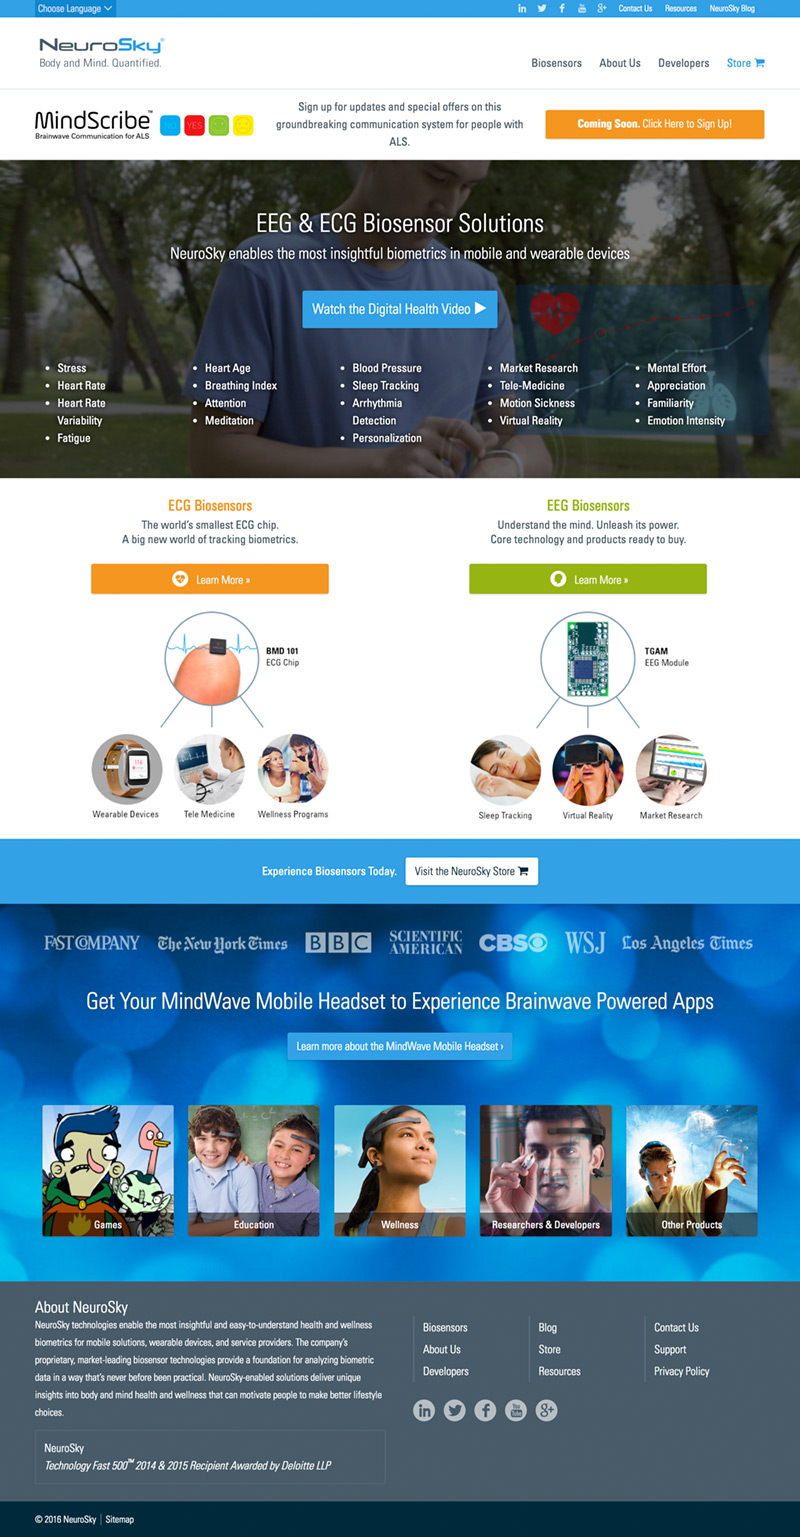 A screenshot of the full NeuroSky homepage